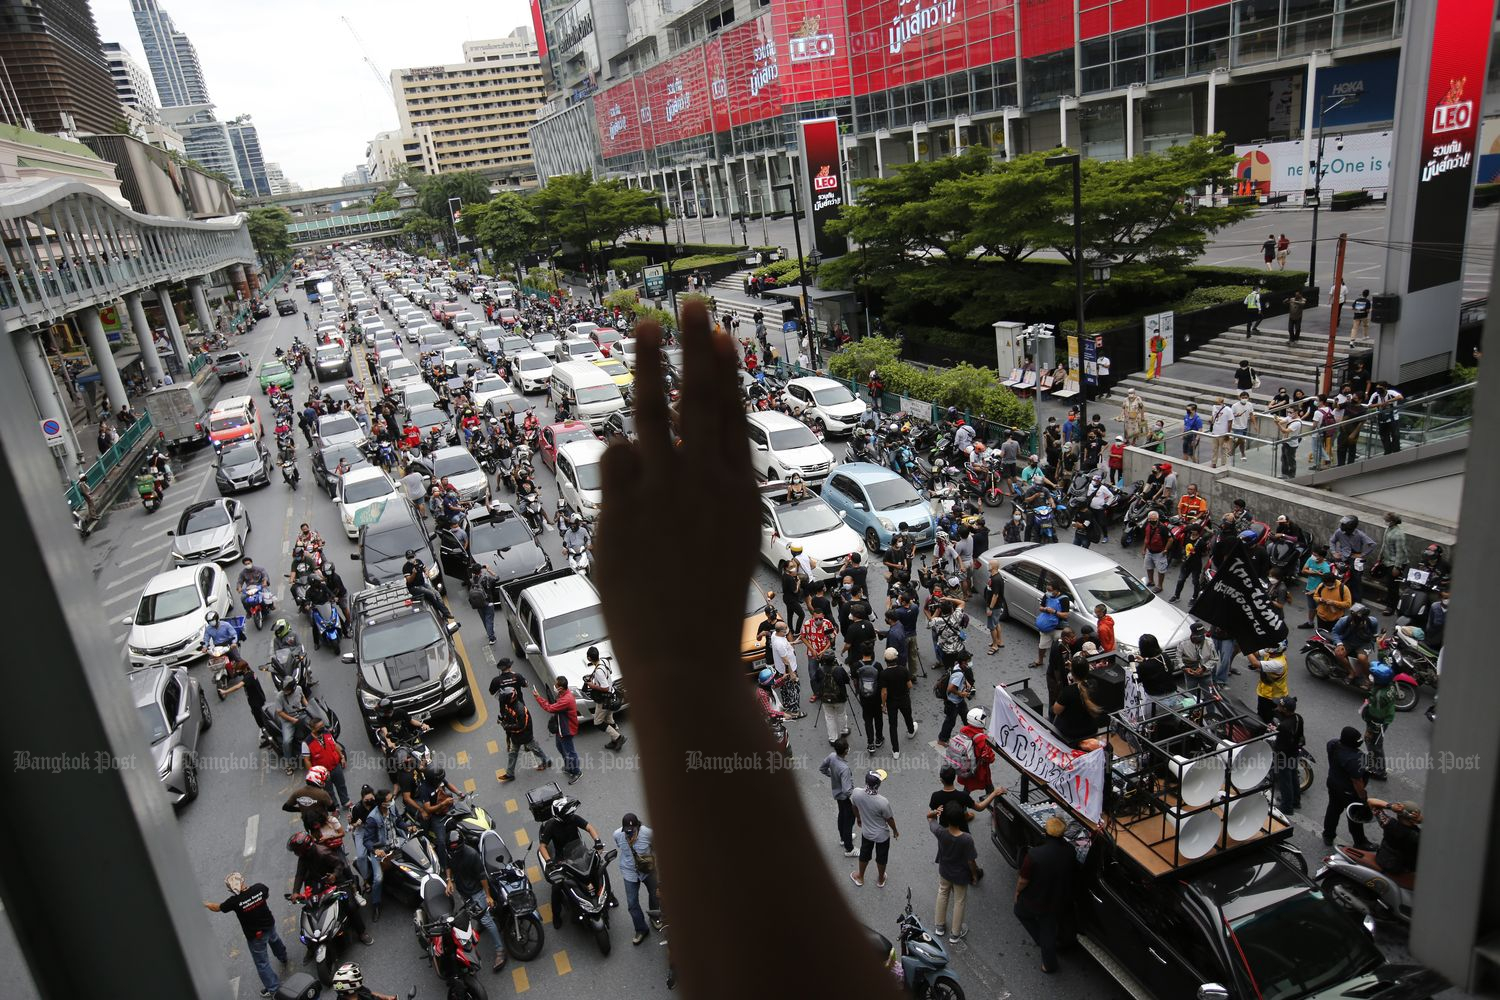 A person flashes a three-fingered salute on the skywalk at Ratchadamri intersection in Bangkok in support of the